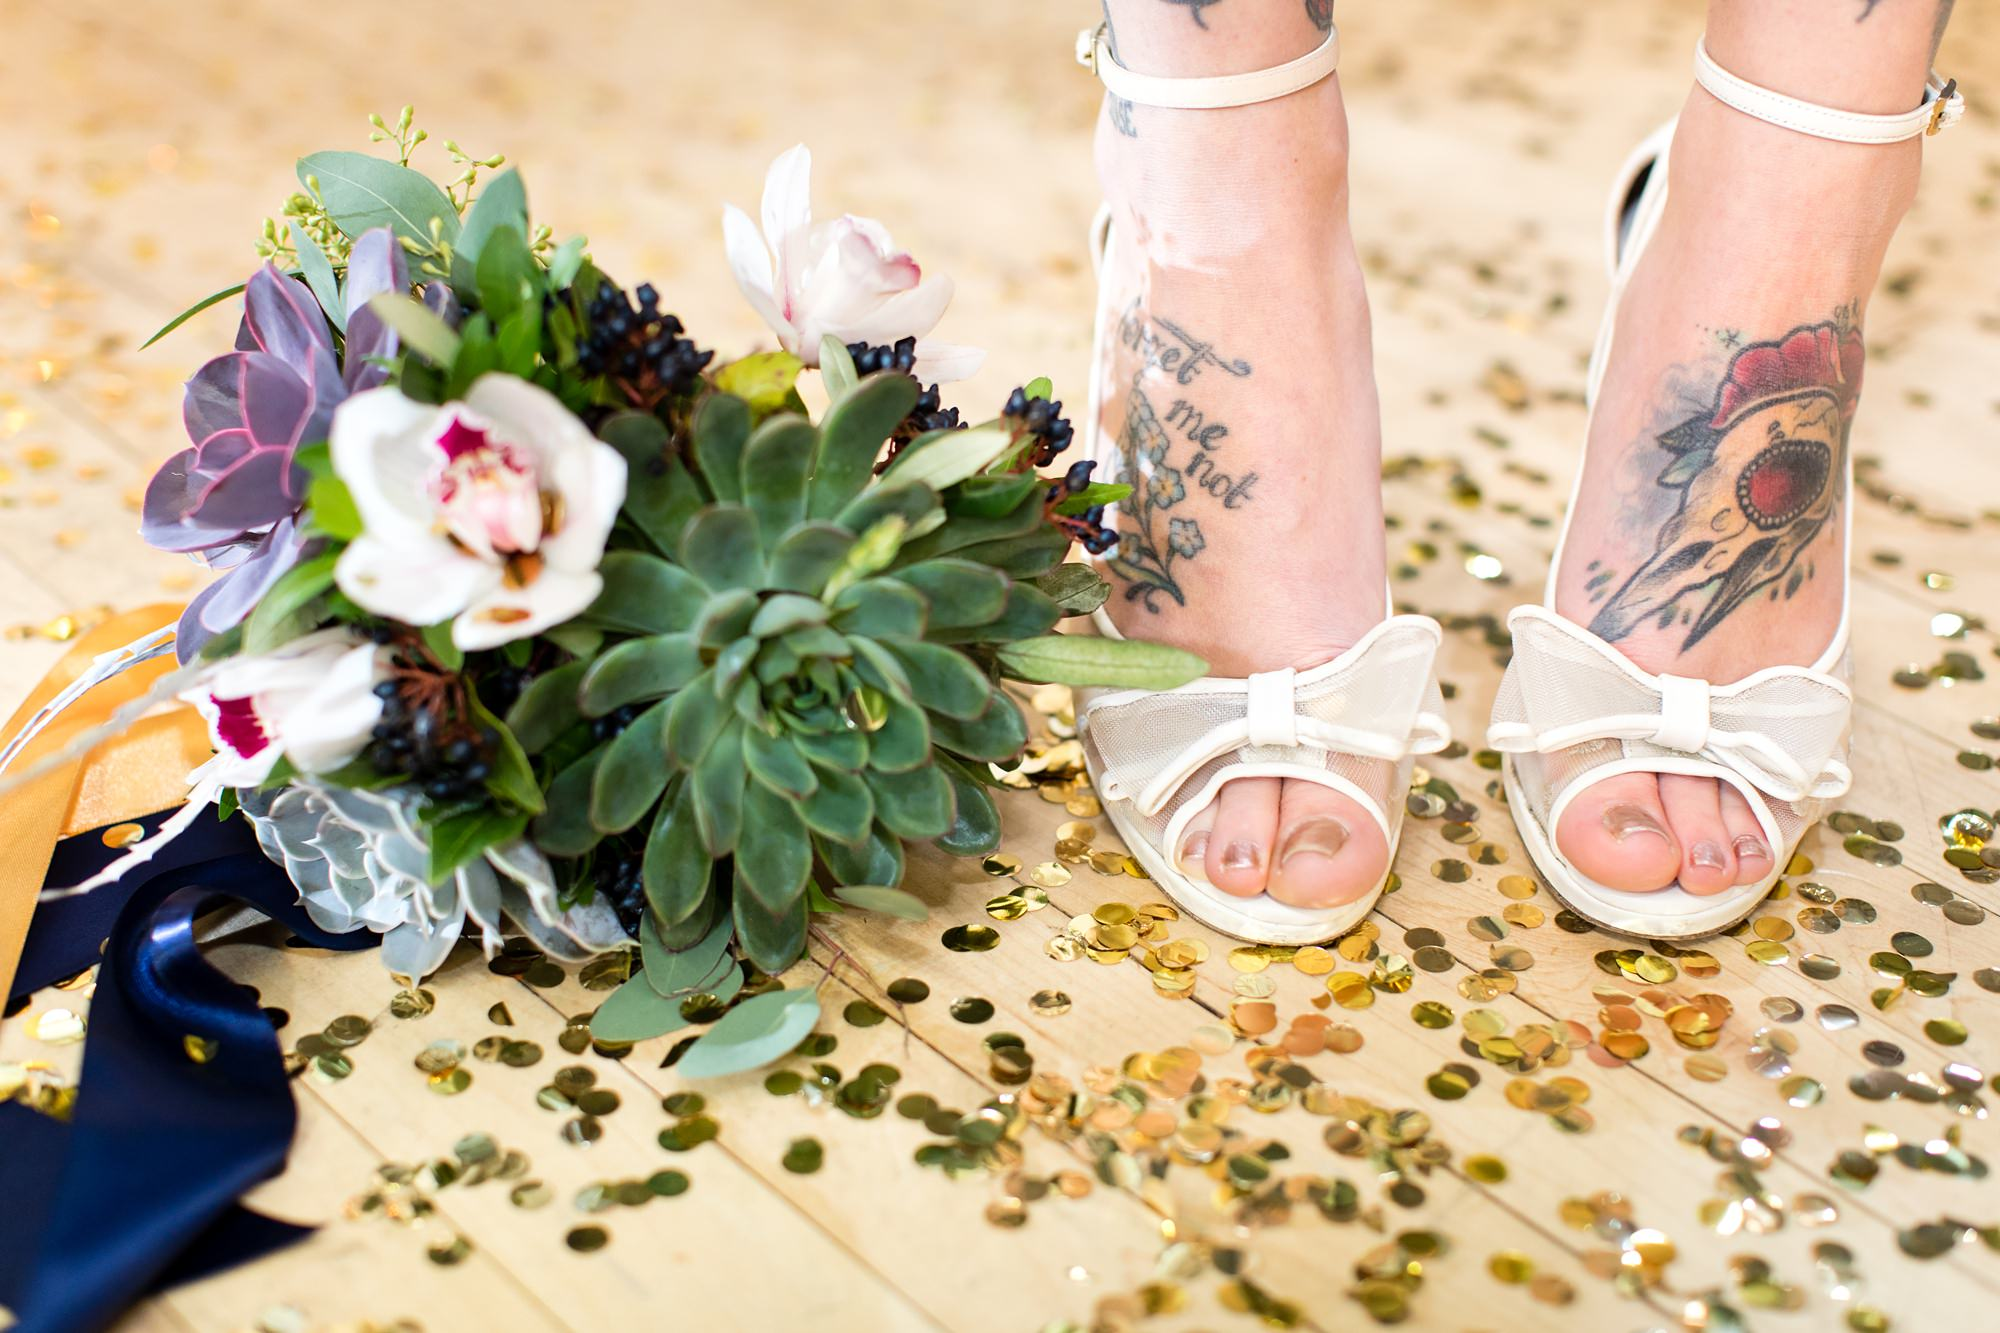 White wedding shoes and bouquet standing on top of confetti on ballroom floor